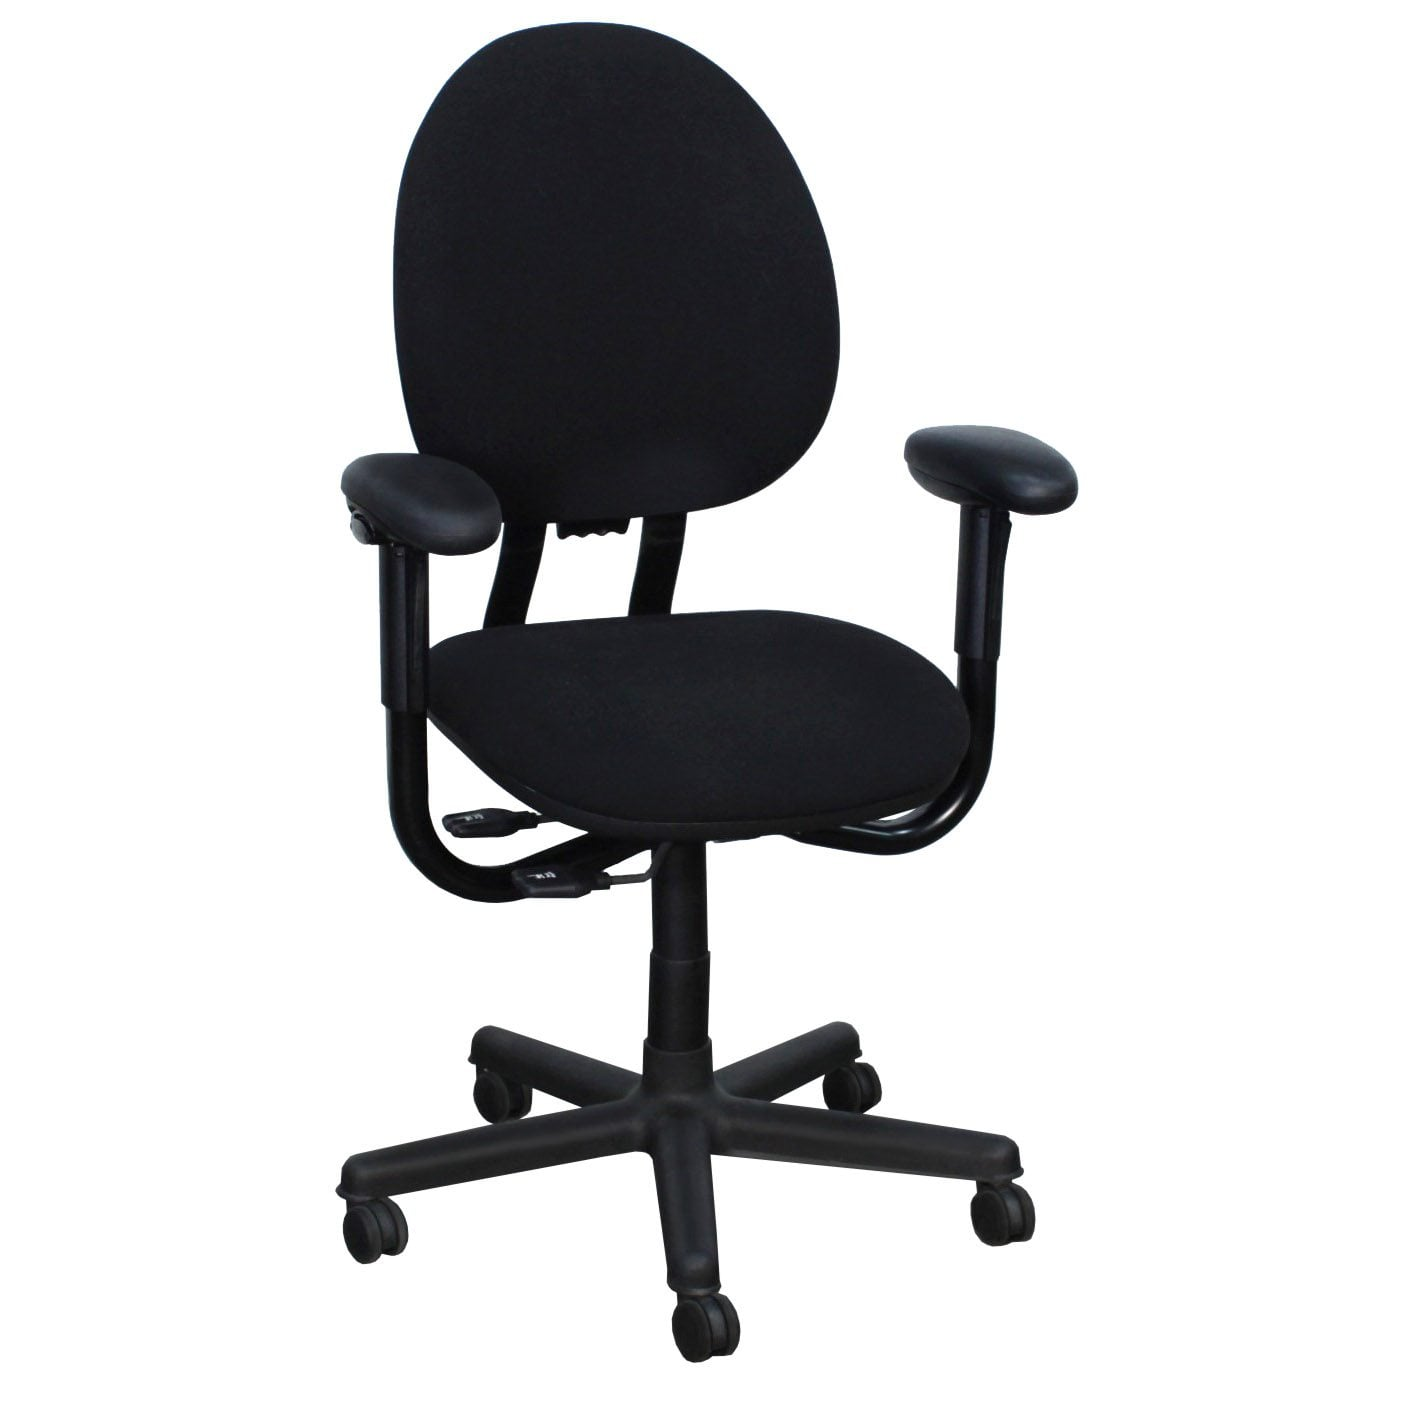 ergonomic chair used card table and chairs set target steelcase criterion high back series task black